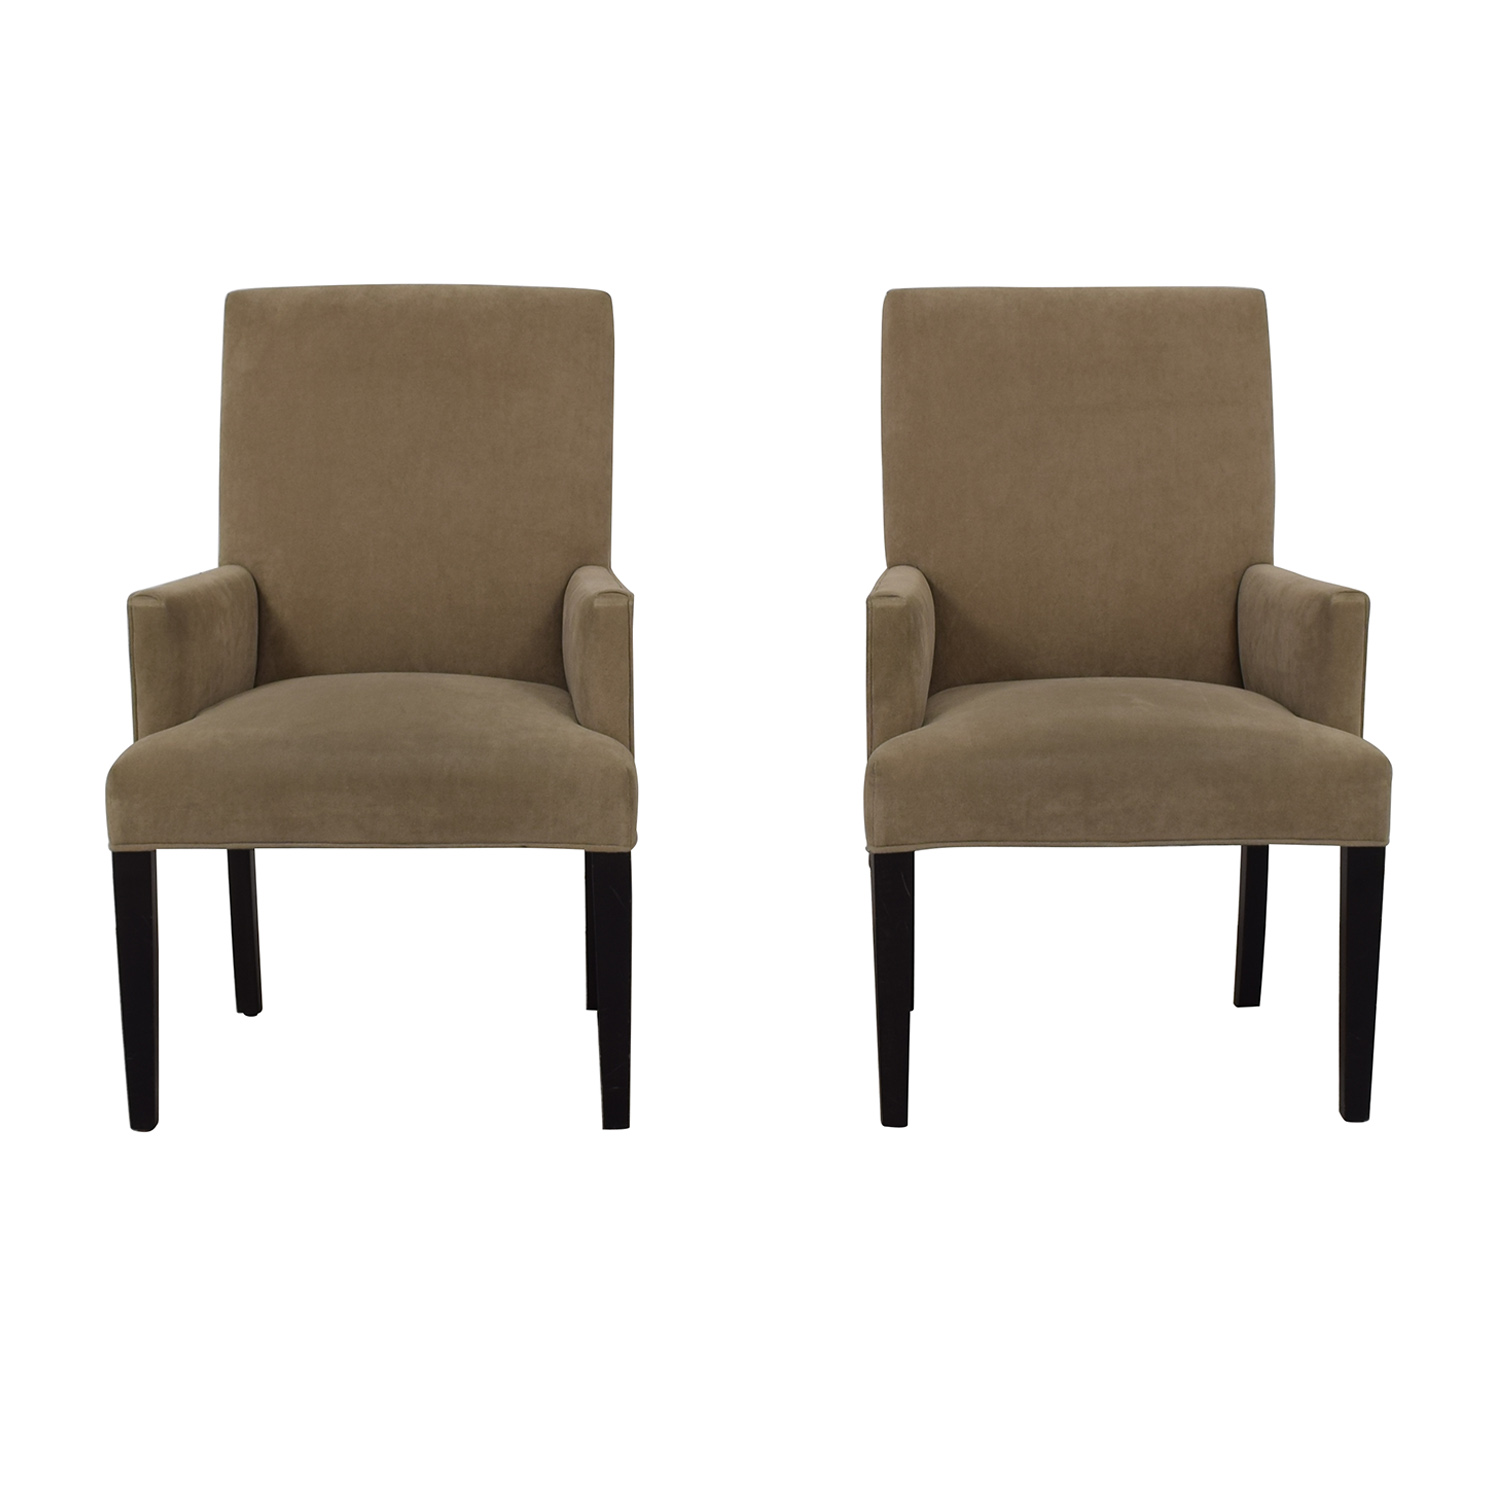 Crate & Barrel Crate & Barrel Tan Dining Chairs dimensions